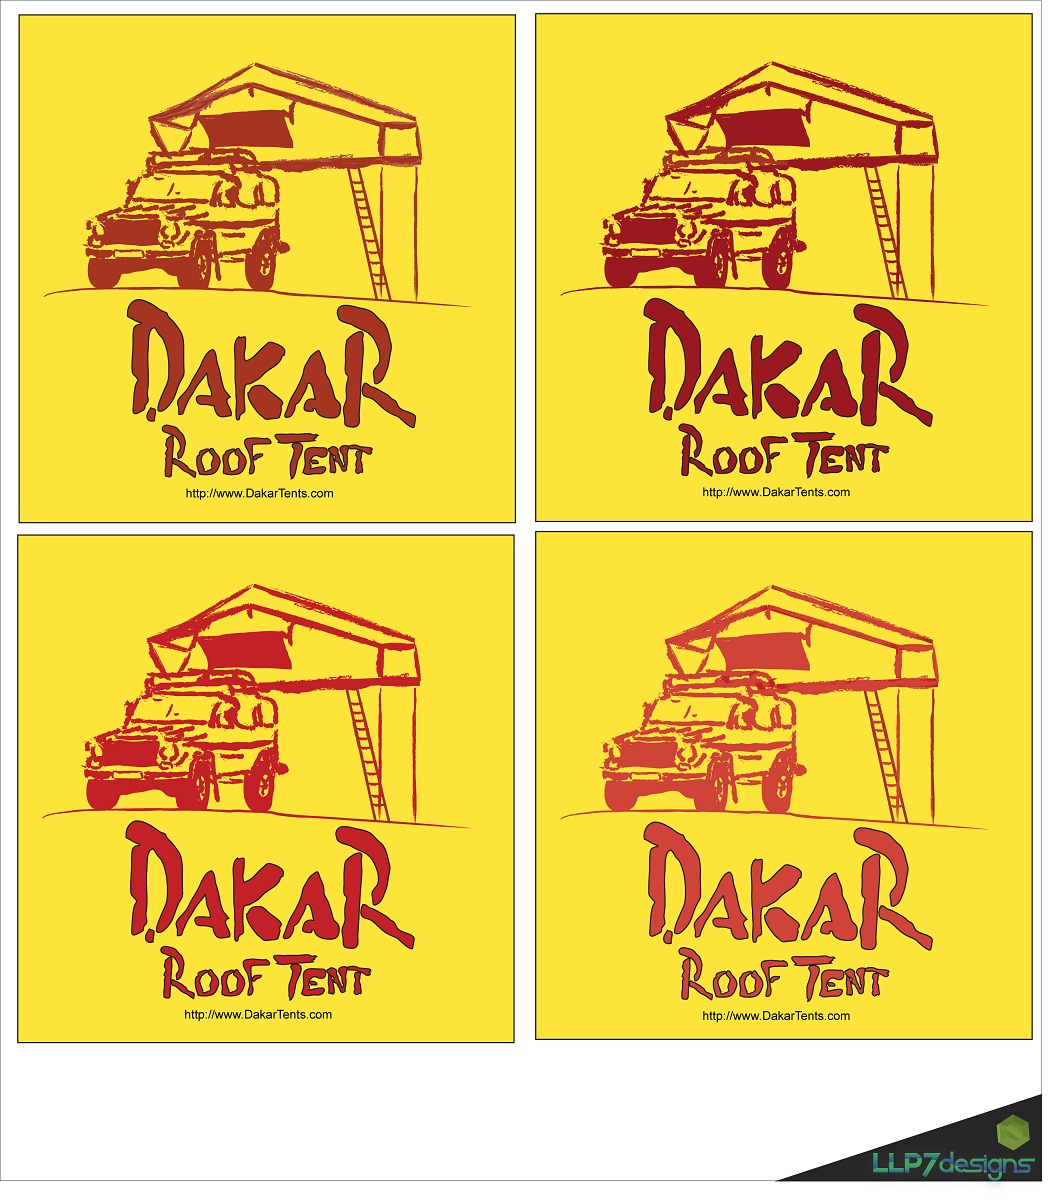 Logo Design by LLP7 - Entry No. 57 in the Logo Design Contest Dakar Roof Tents.